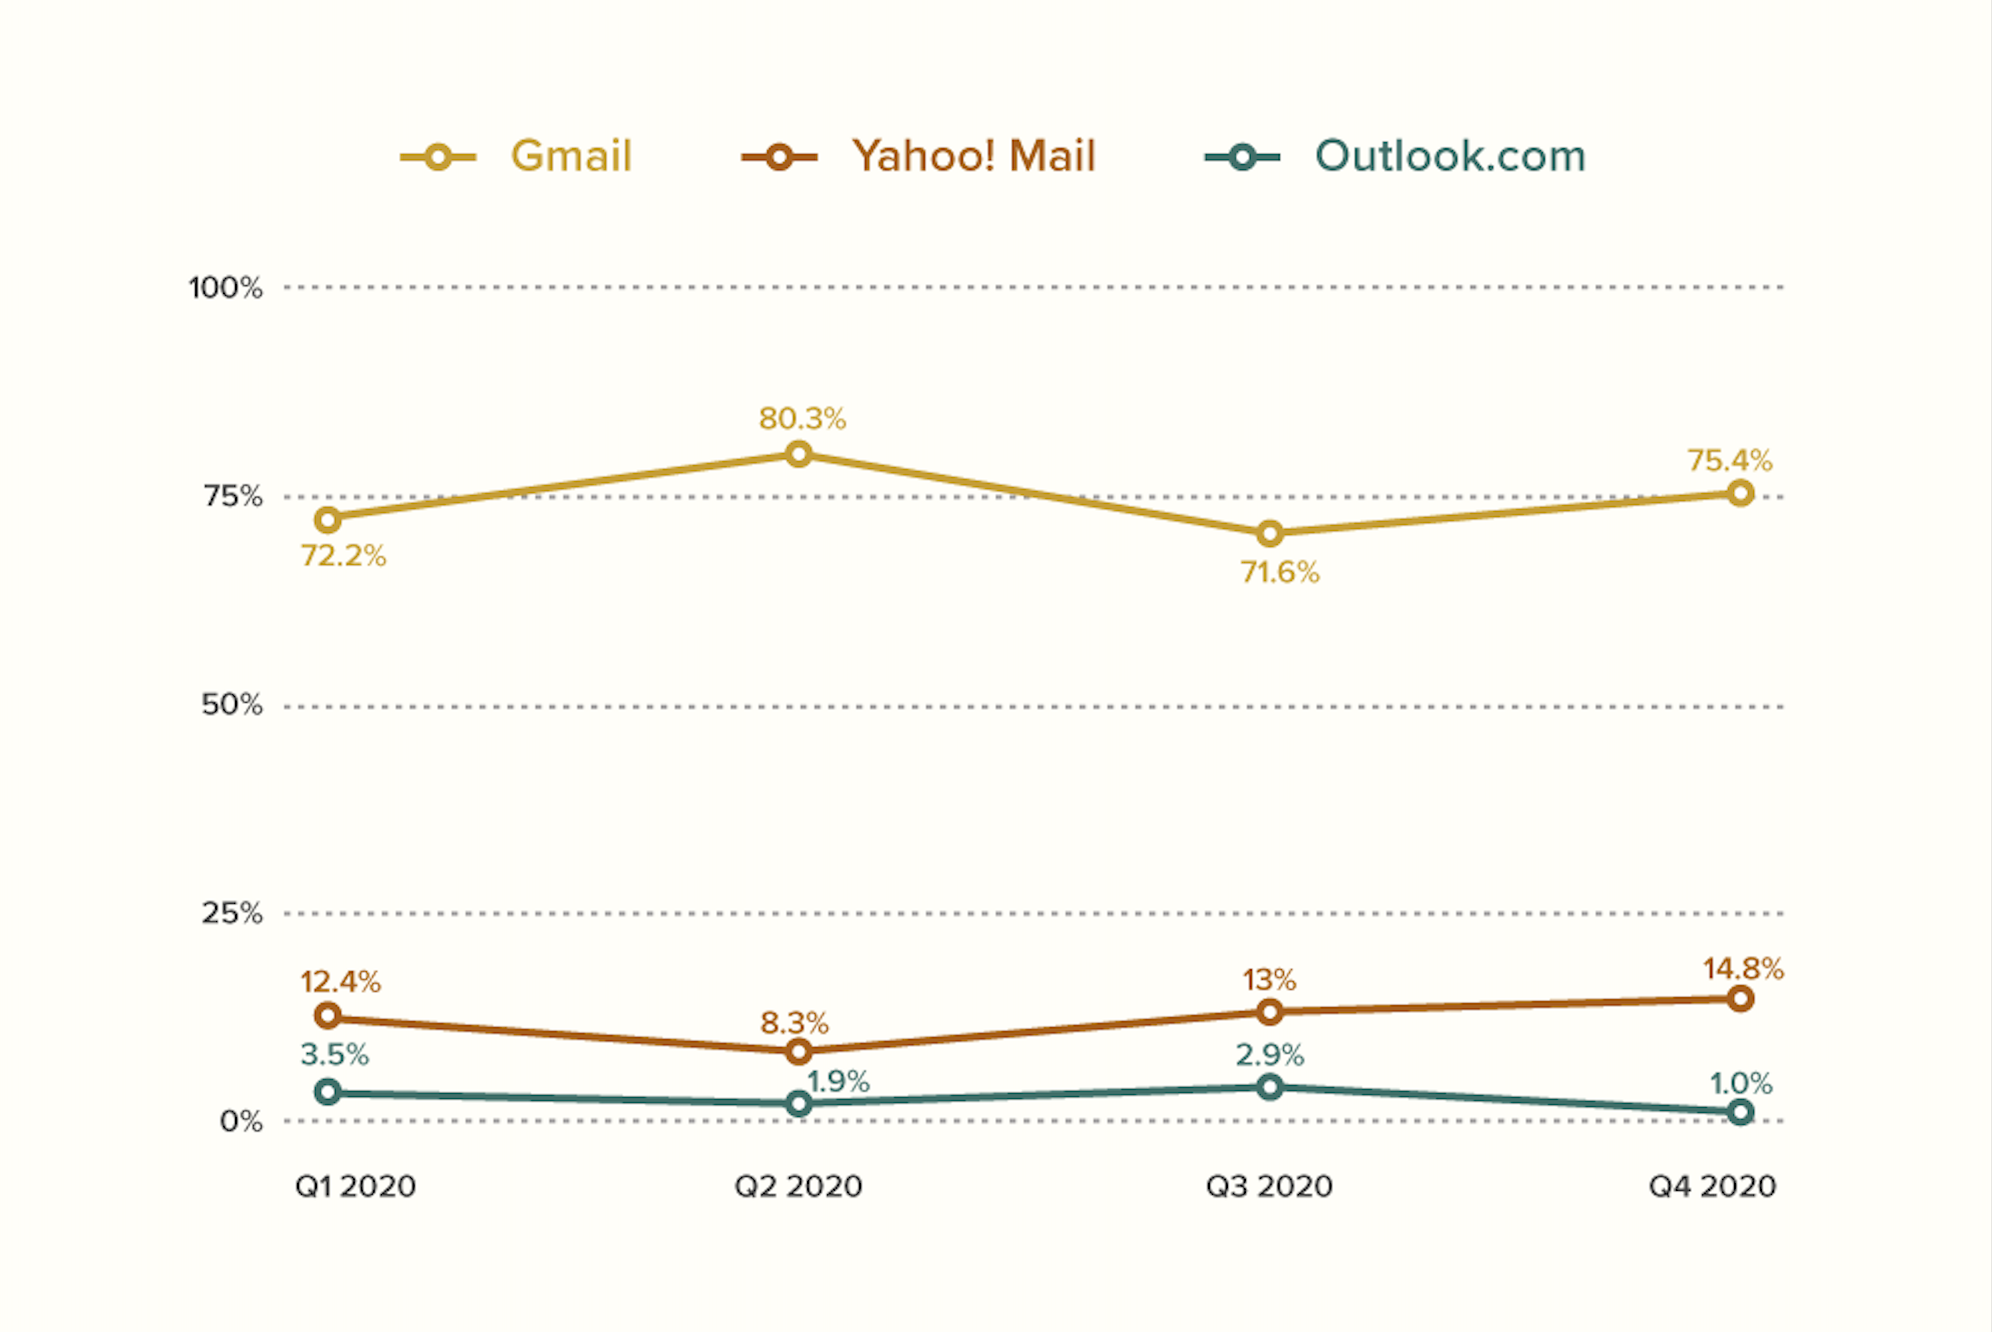 2020 top webmail email client market share via Litmus Email Analytics